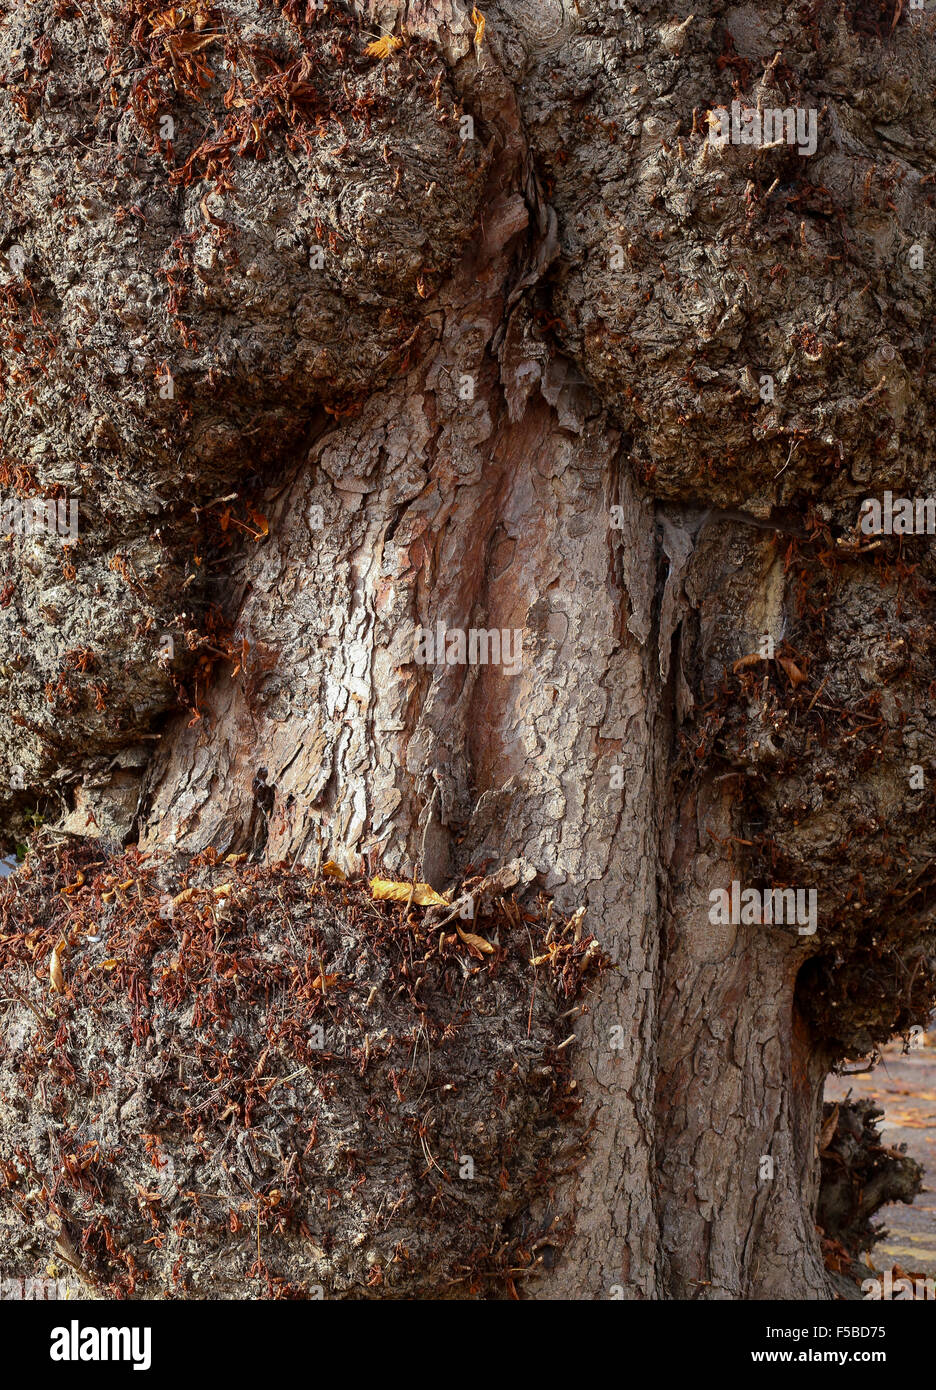 Autumn leaves on horse chestnut (Aesculus hippocastanum) with burrs on trunk with rough bark - Stock Image